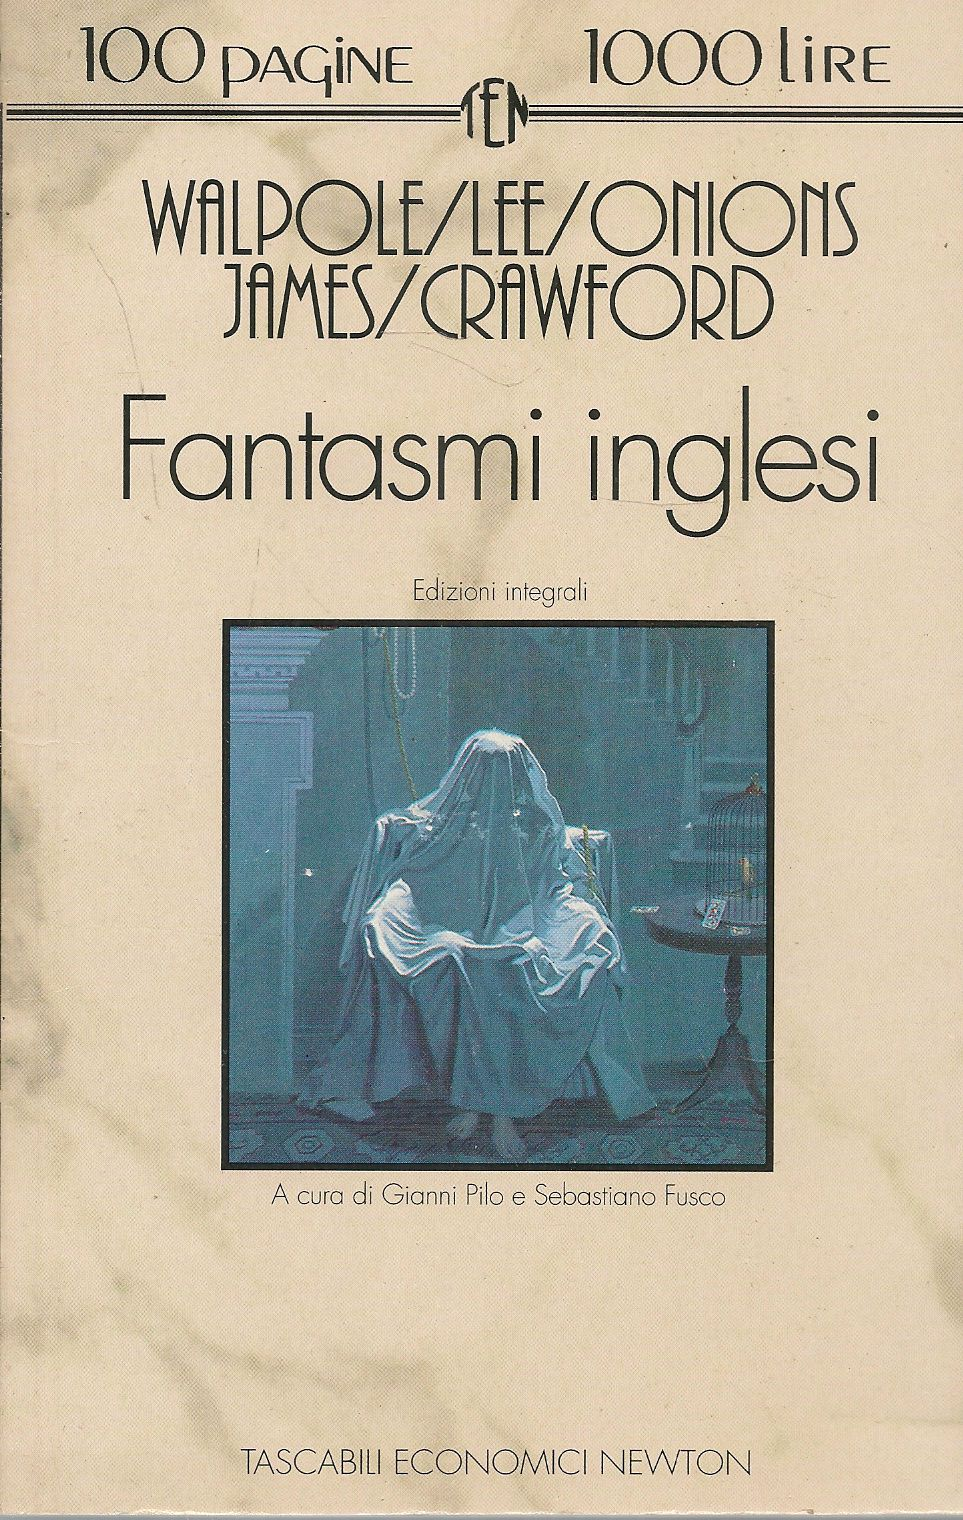 FANTASMI INGLESI - WALPOLE-LEE-ONIONS-JAMES-CRAWFORD